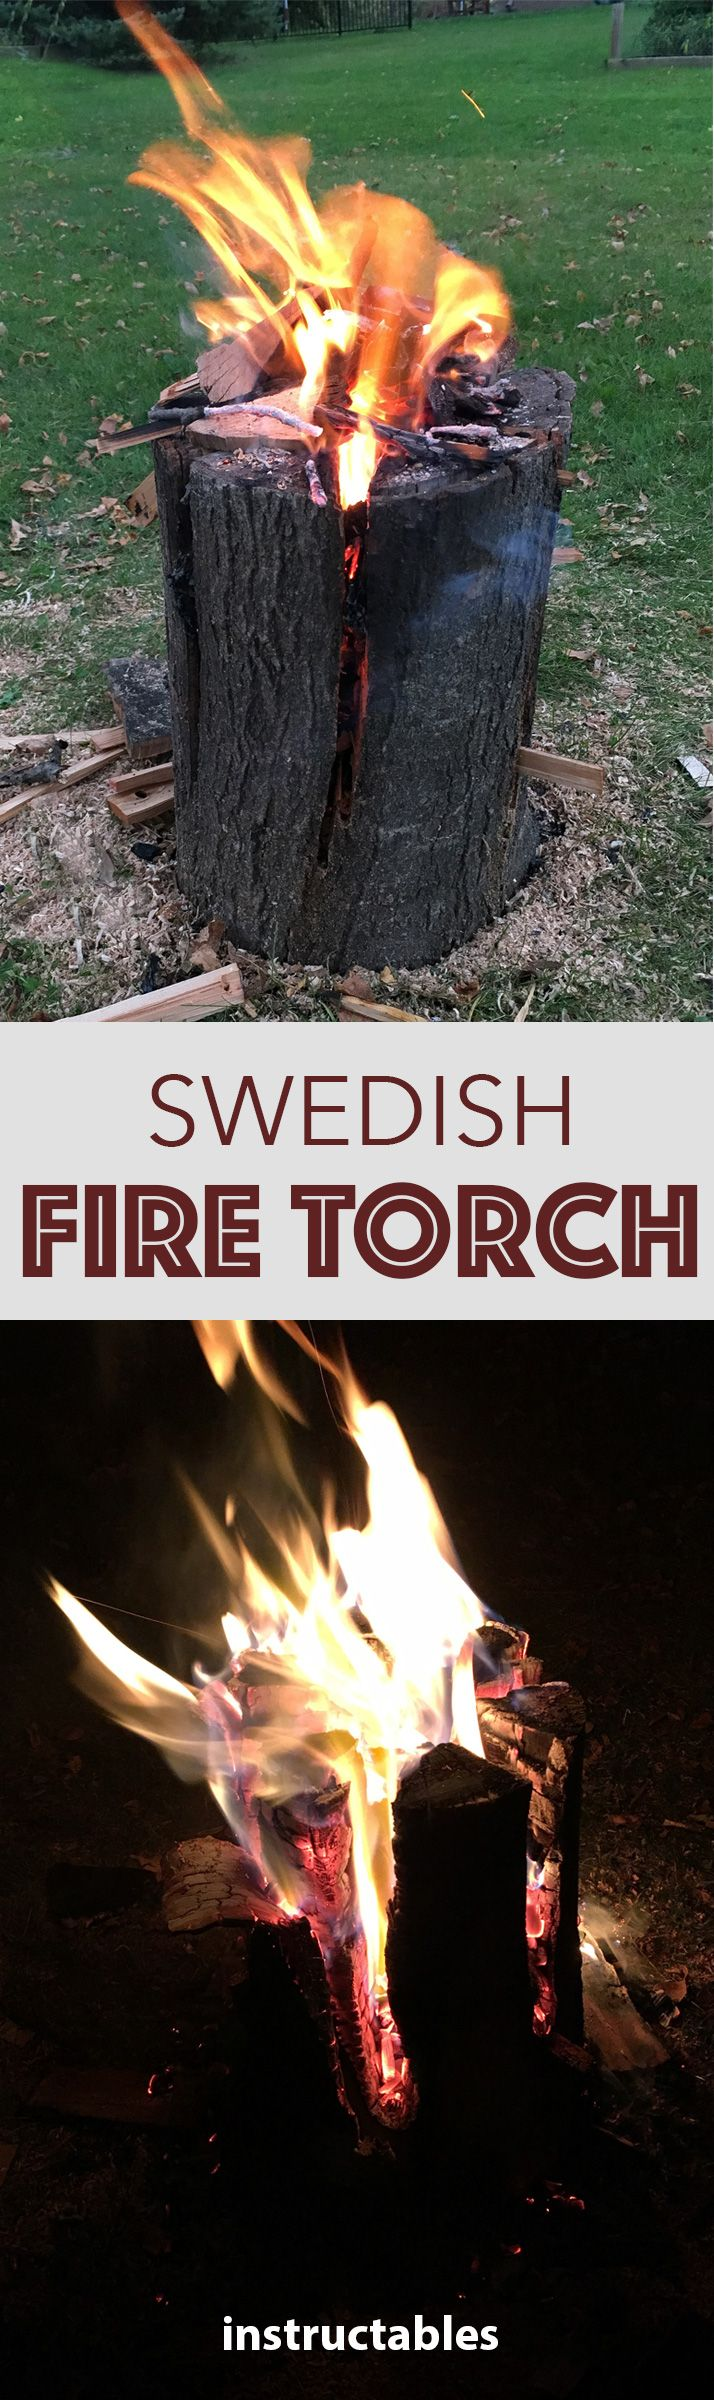 Make your next campfire awesome!